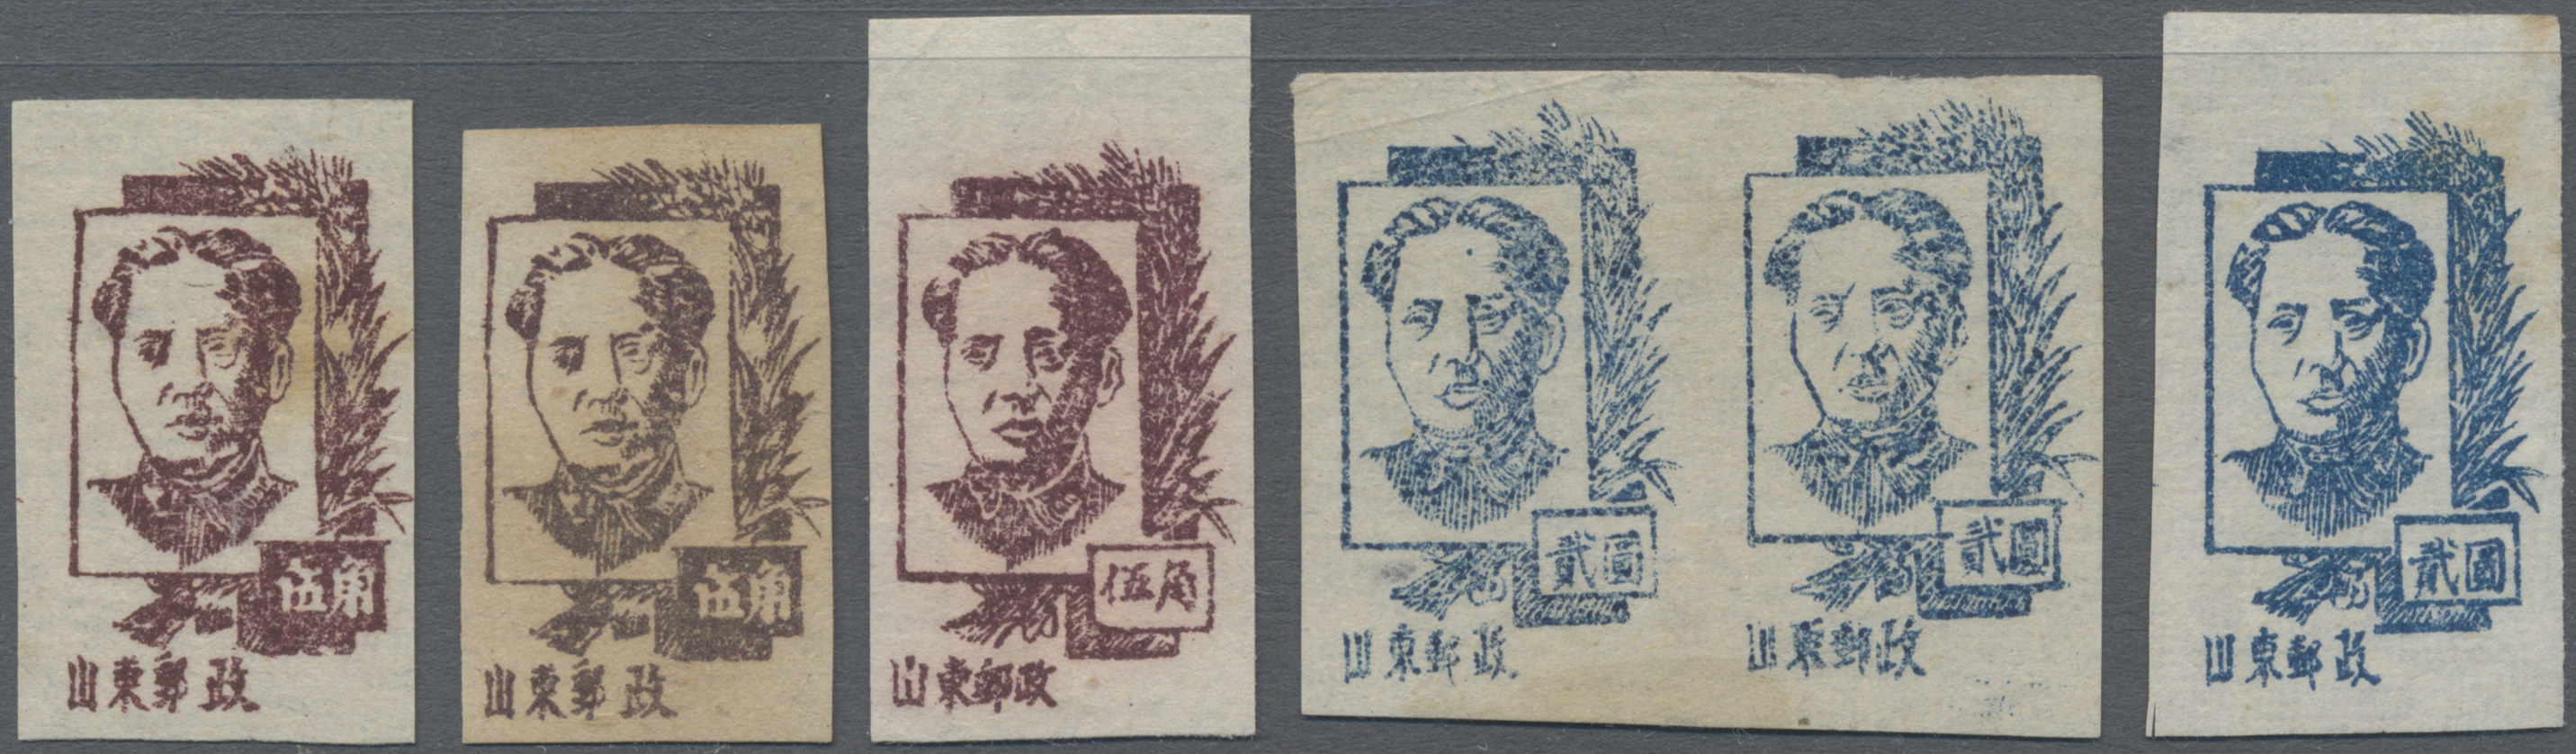 Lot 05079 - China - Volksrepublik - Provinzen  -  Auktionshaus Christoph Gärtner GmbH & Co. KG Sale #46 Special Auction China - including Liberated Areas